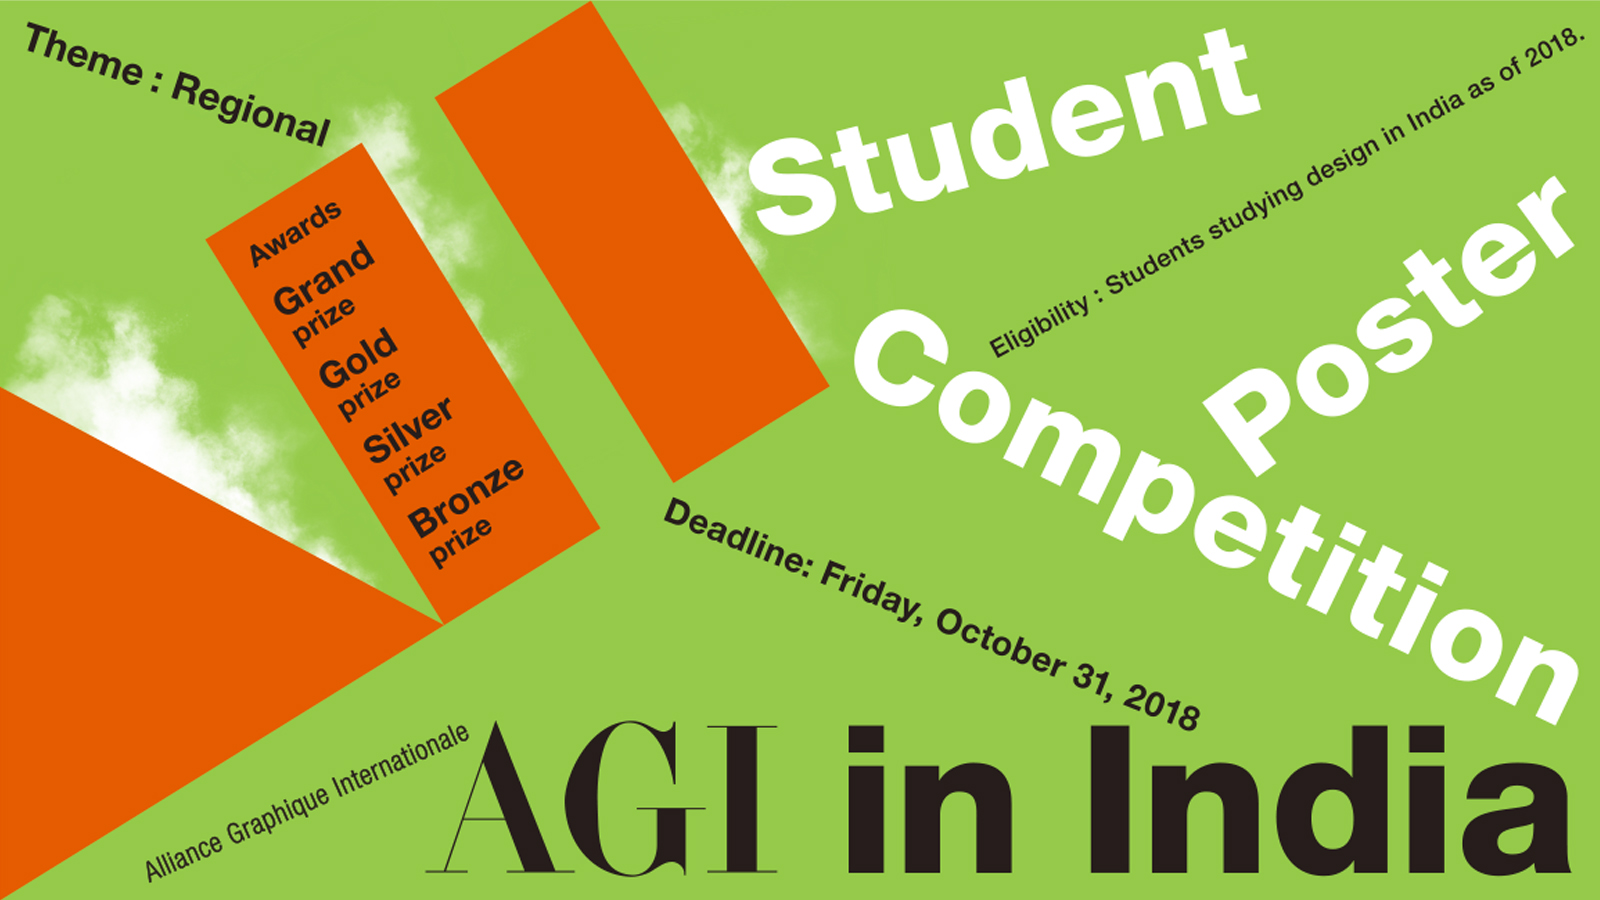 AGI_in_India_WEB_competition_1009.jpg